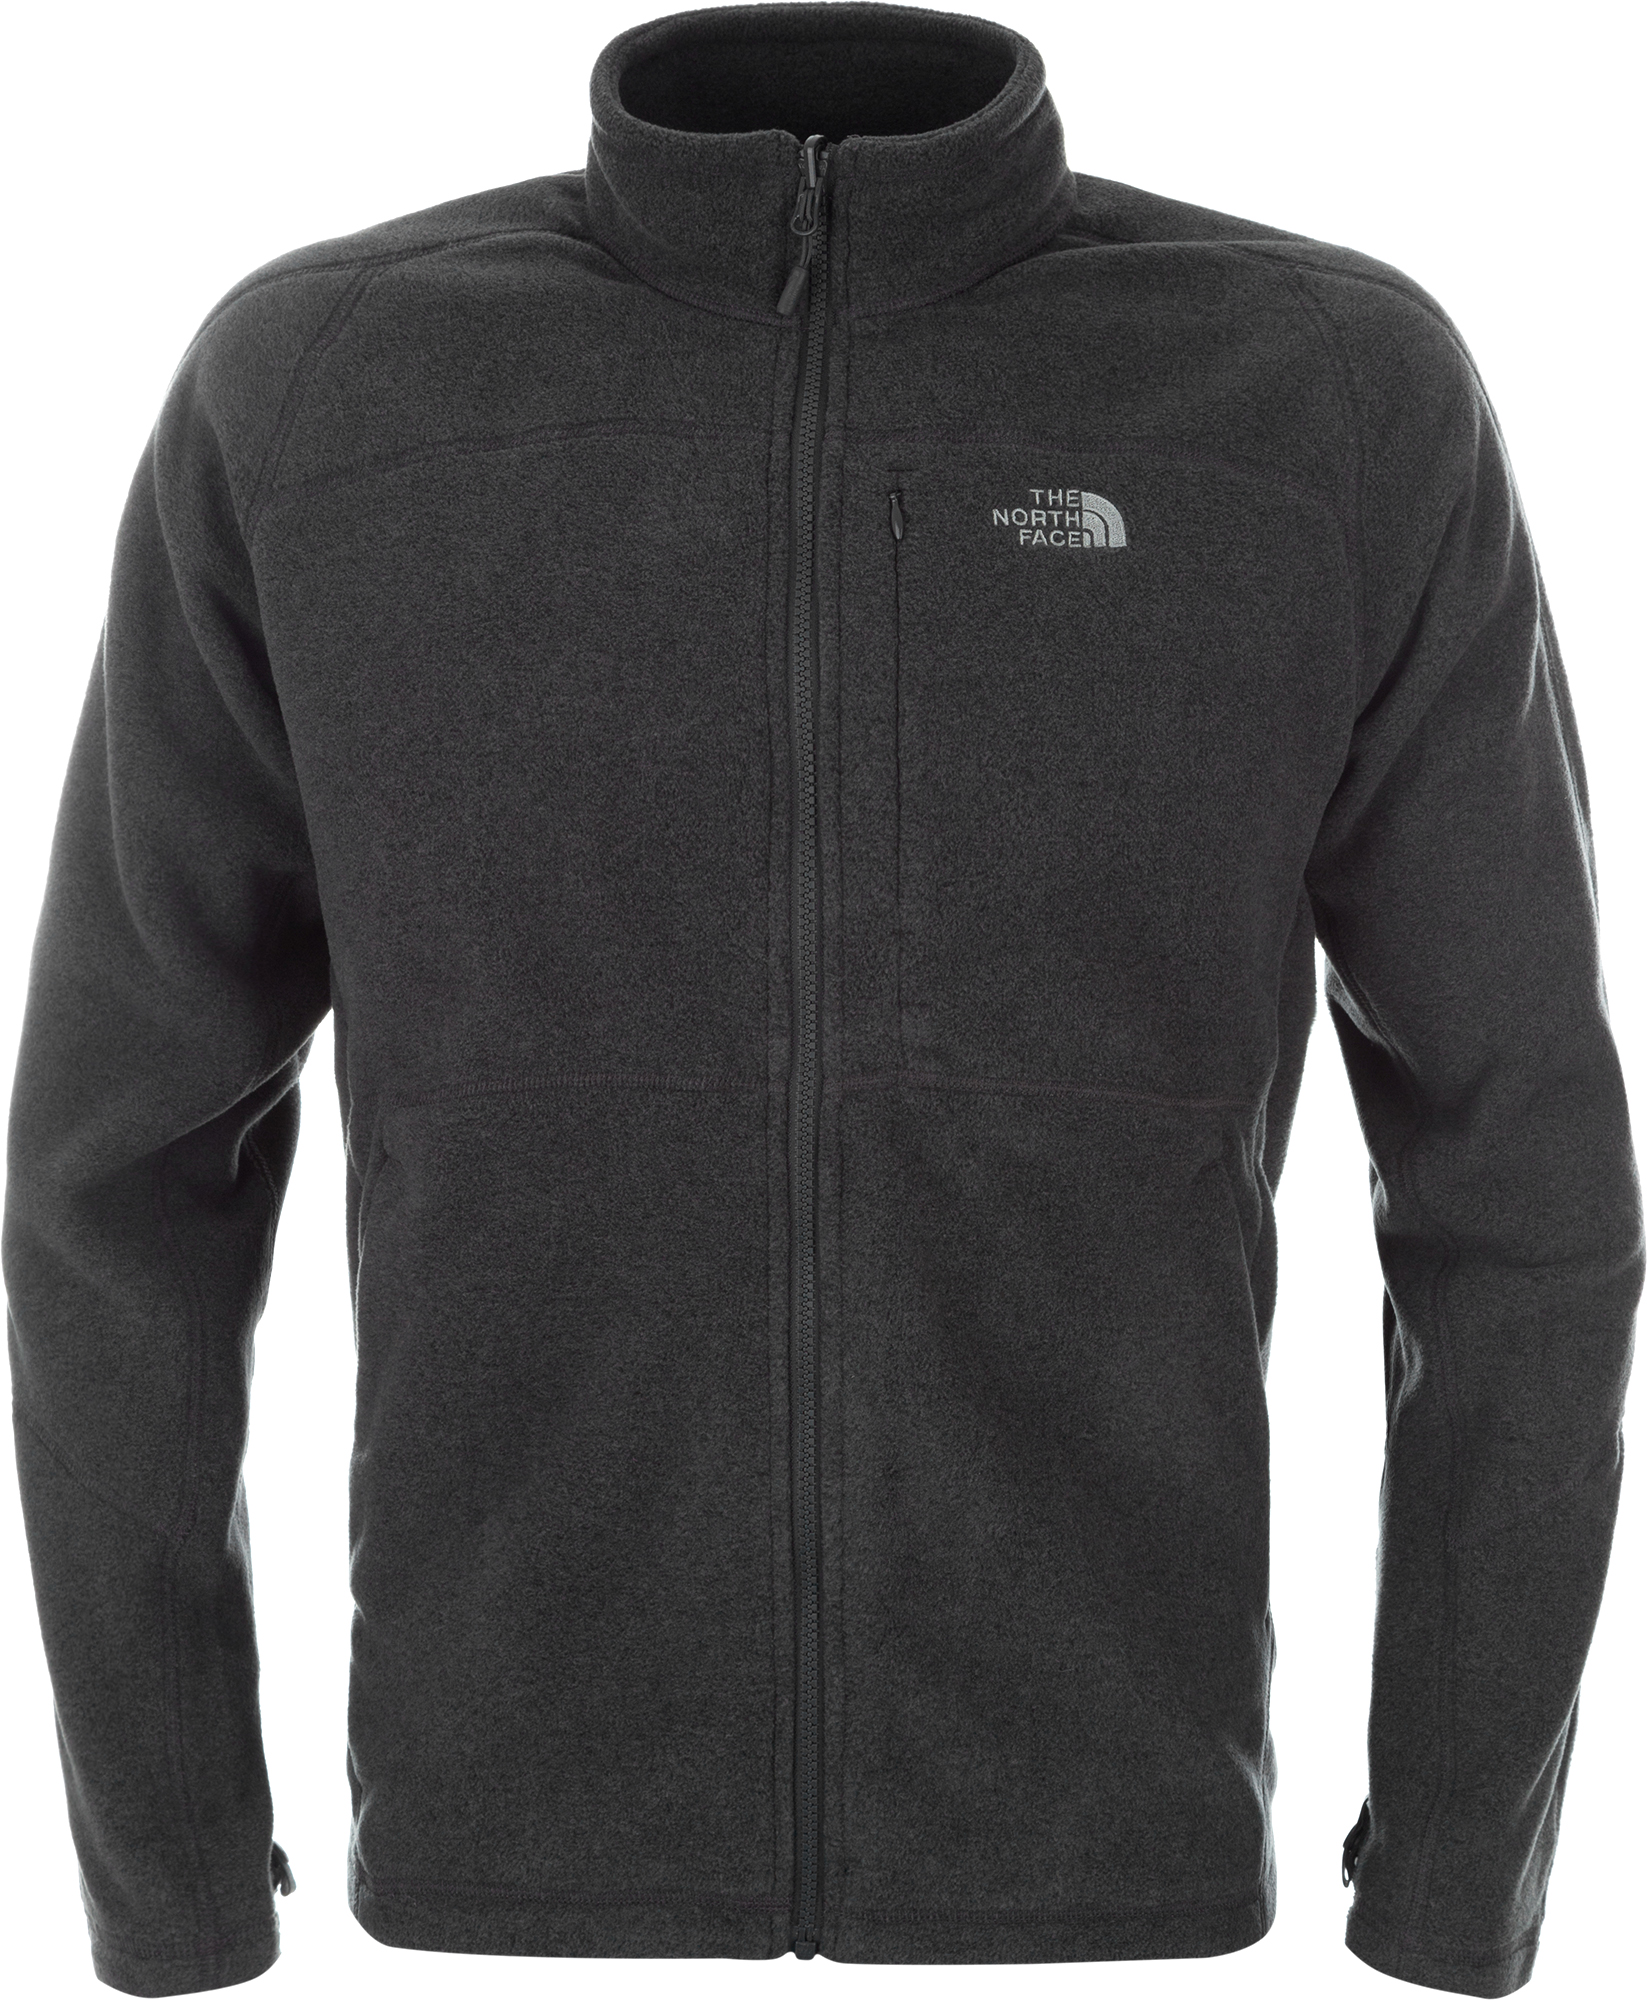 The North Face Джемпер мужской The North Face 200 Shadow Full Zip the north face олимпийка